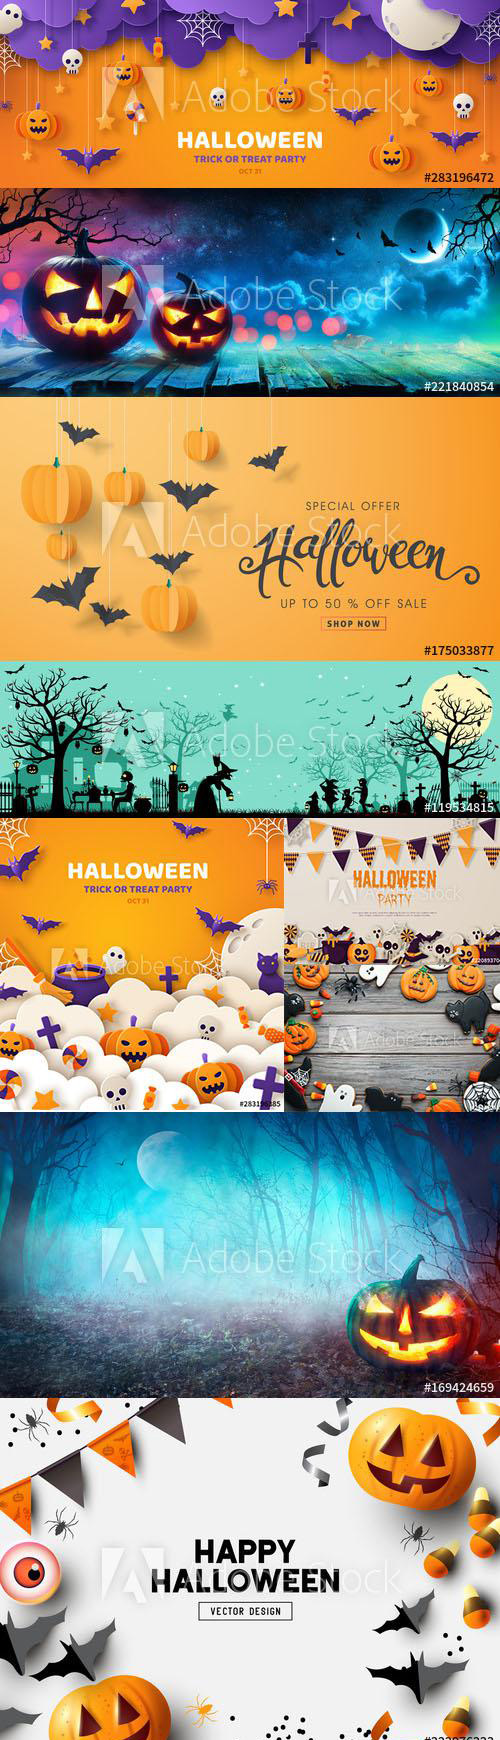 Hand drawn Happy Halloween card, symbols and Illustration Collection